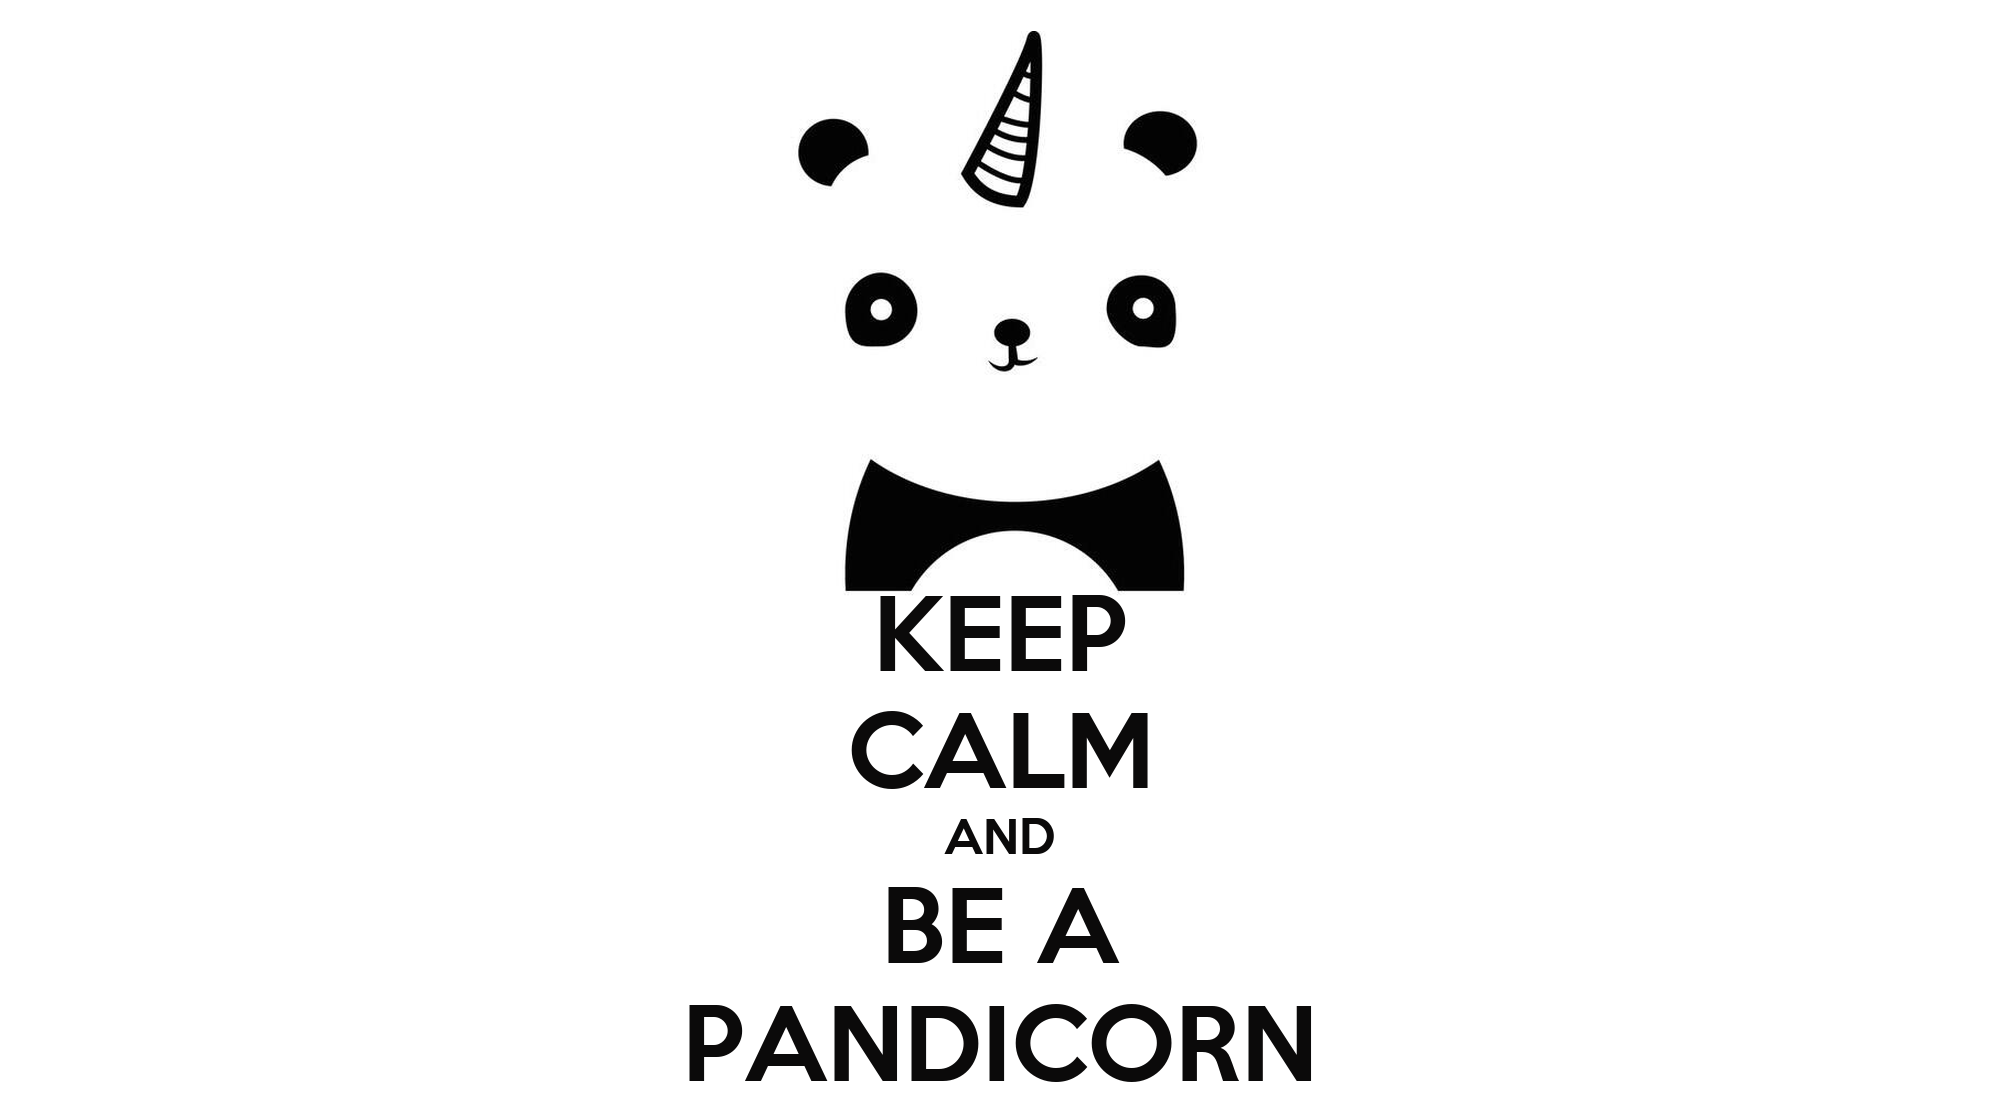 Have You Read Your Bible Today furthermore Keep Calm And Be A Pandicorn 57 additionally Thank You For Your Attention 549 furthermore Breaking News I Don T Care besides Keep Calm We Re Having A Team Meeting 2. on products to try and keep